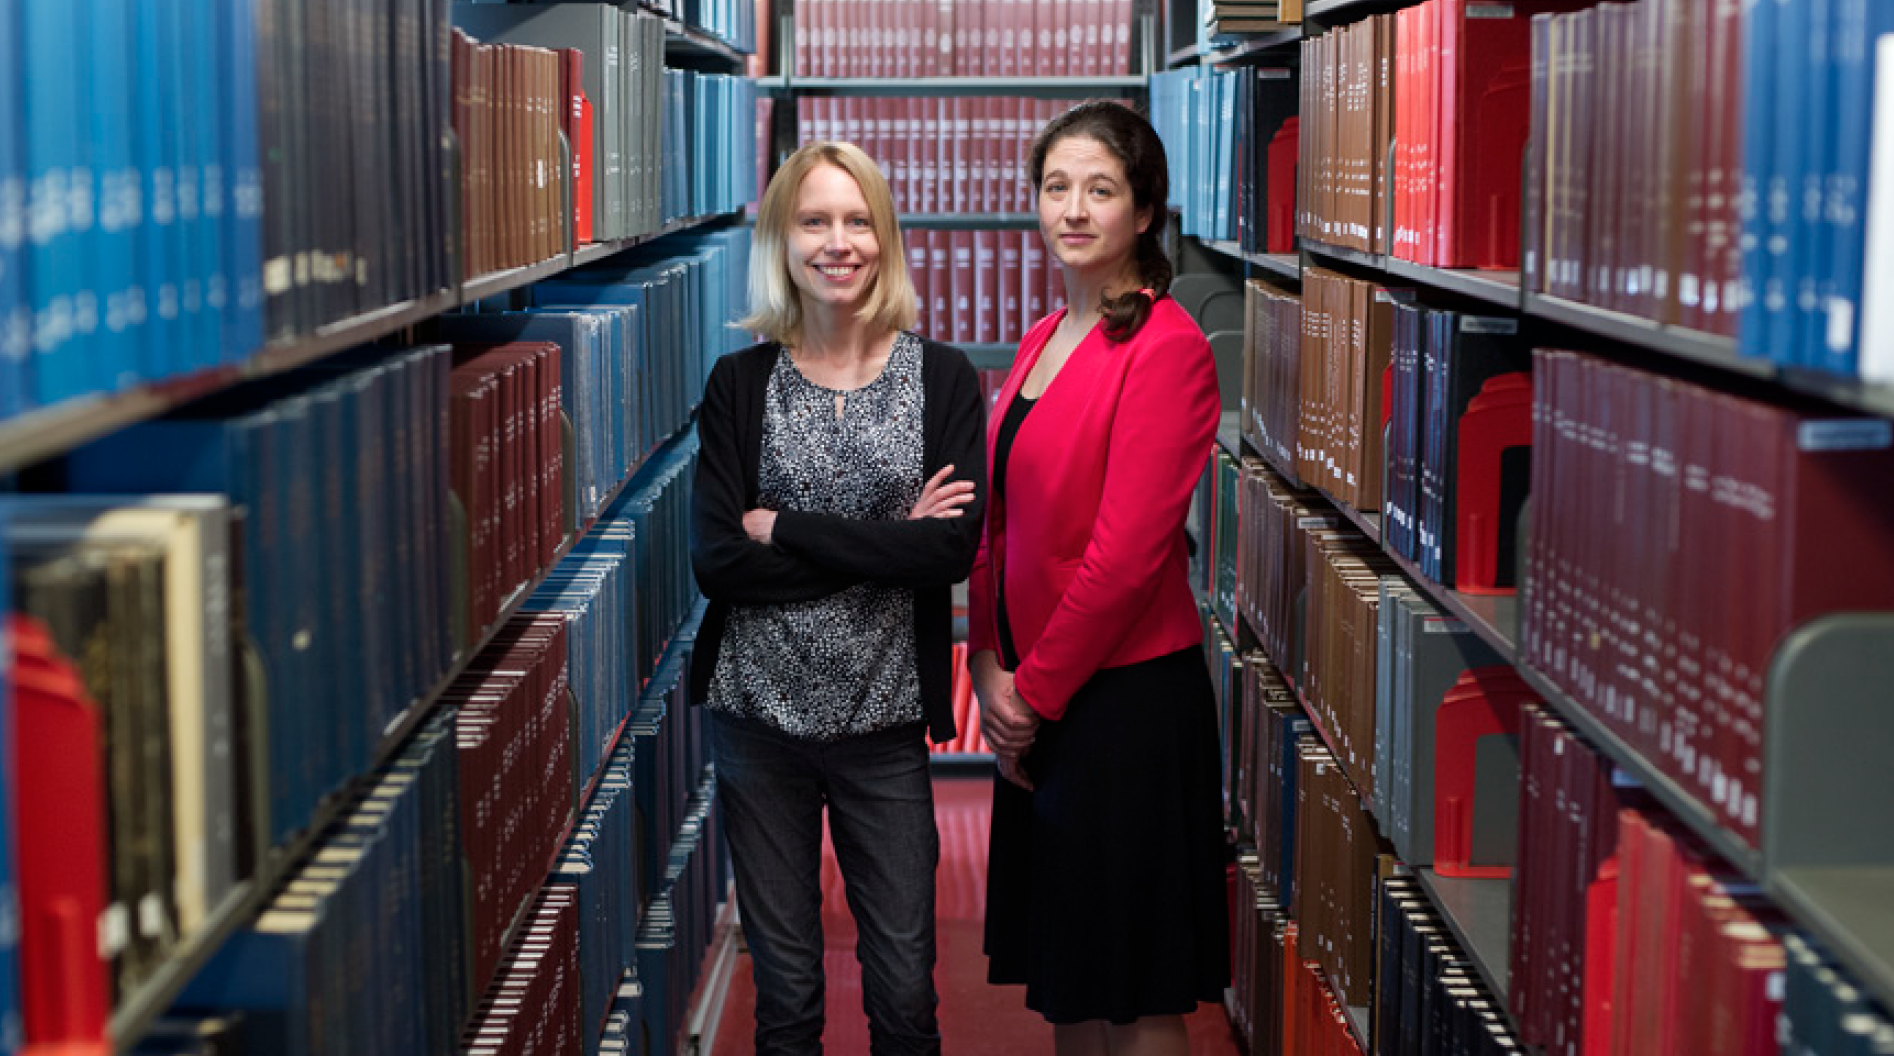 Professor Stefanie Jegelka and Professor Elsa Olivetti stand in a library alley.